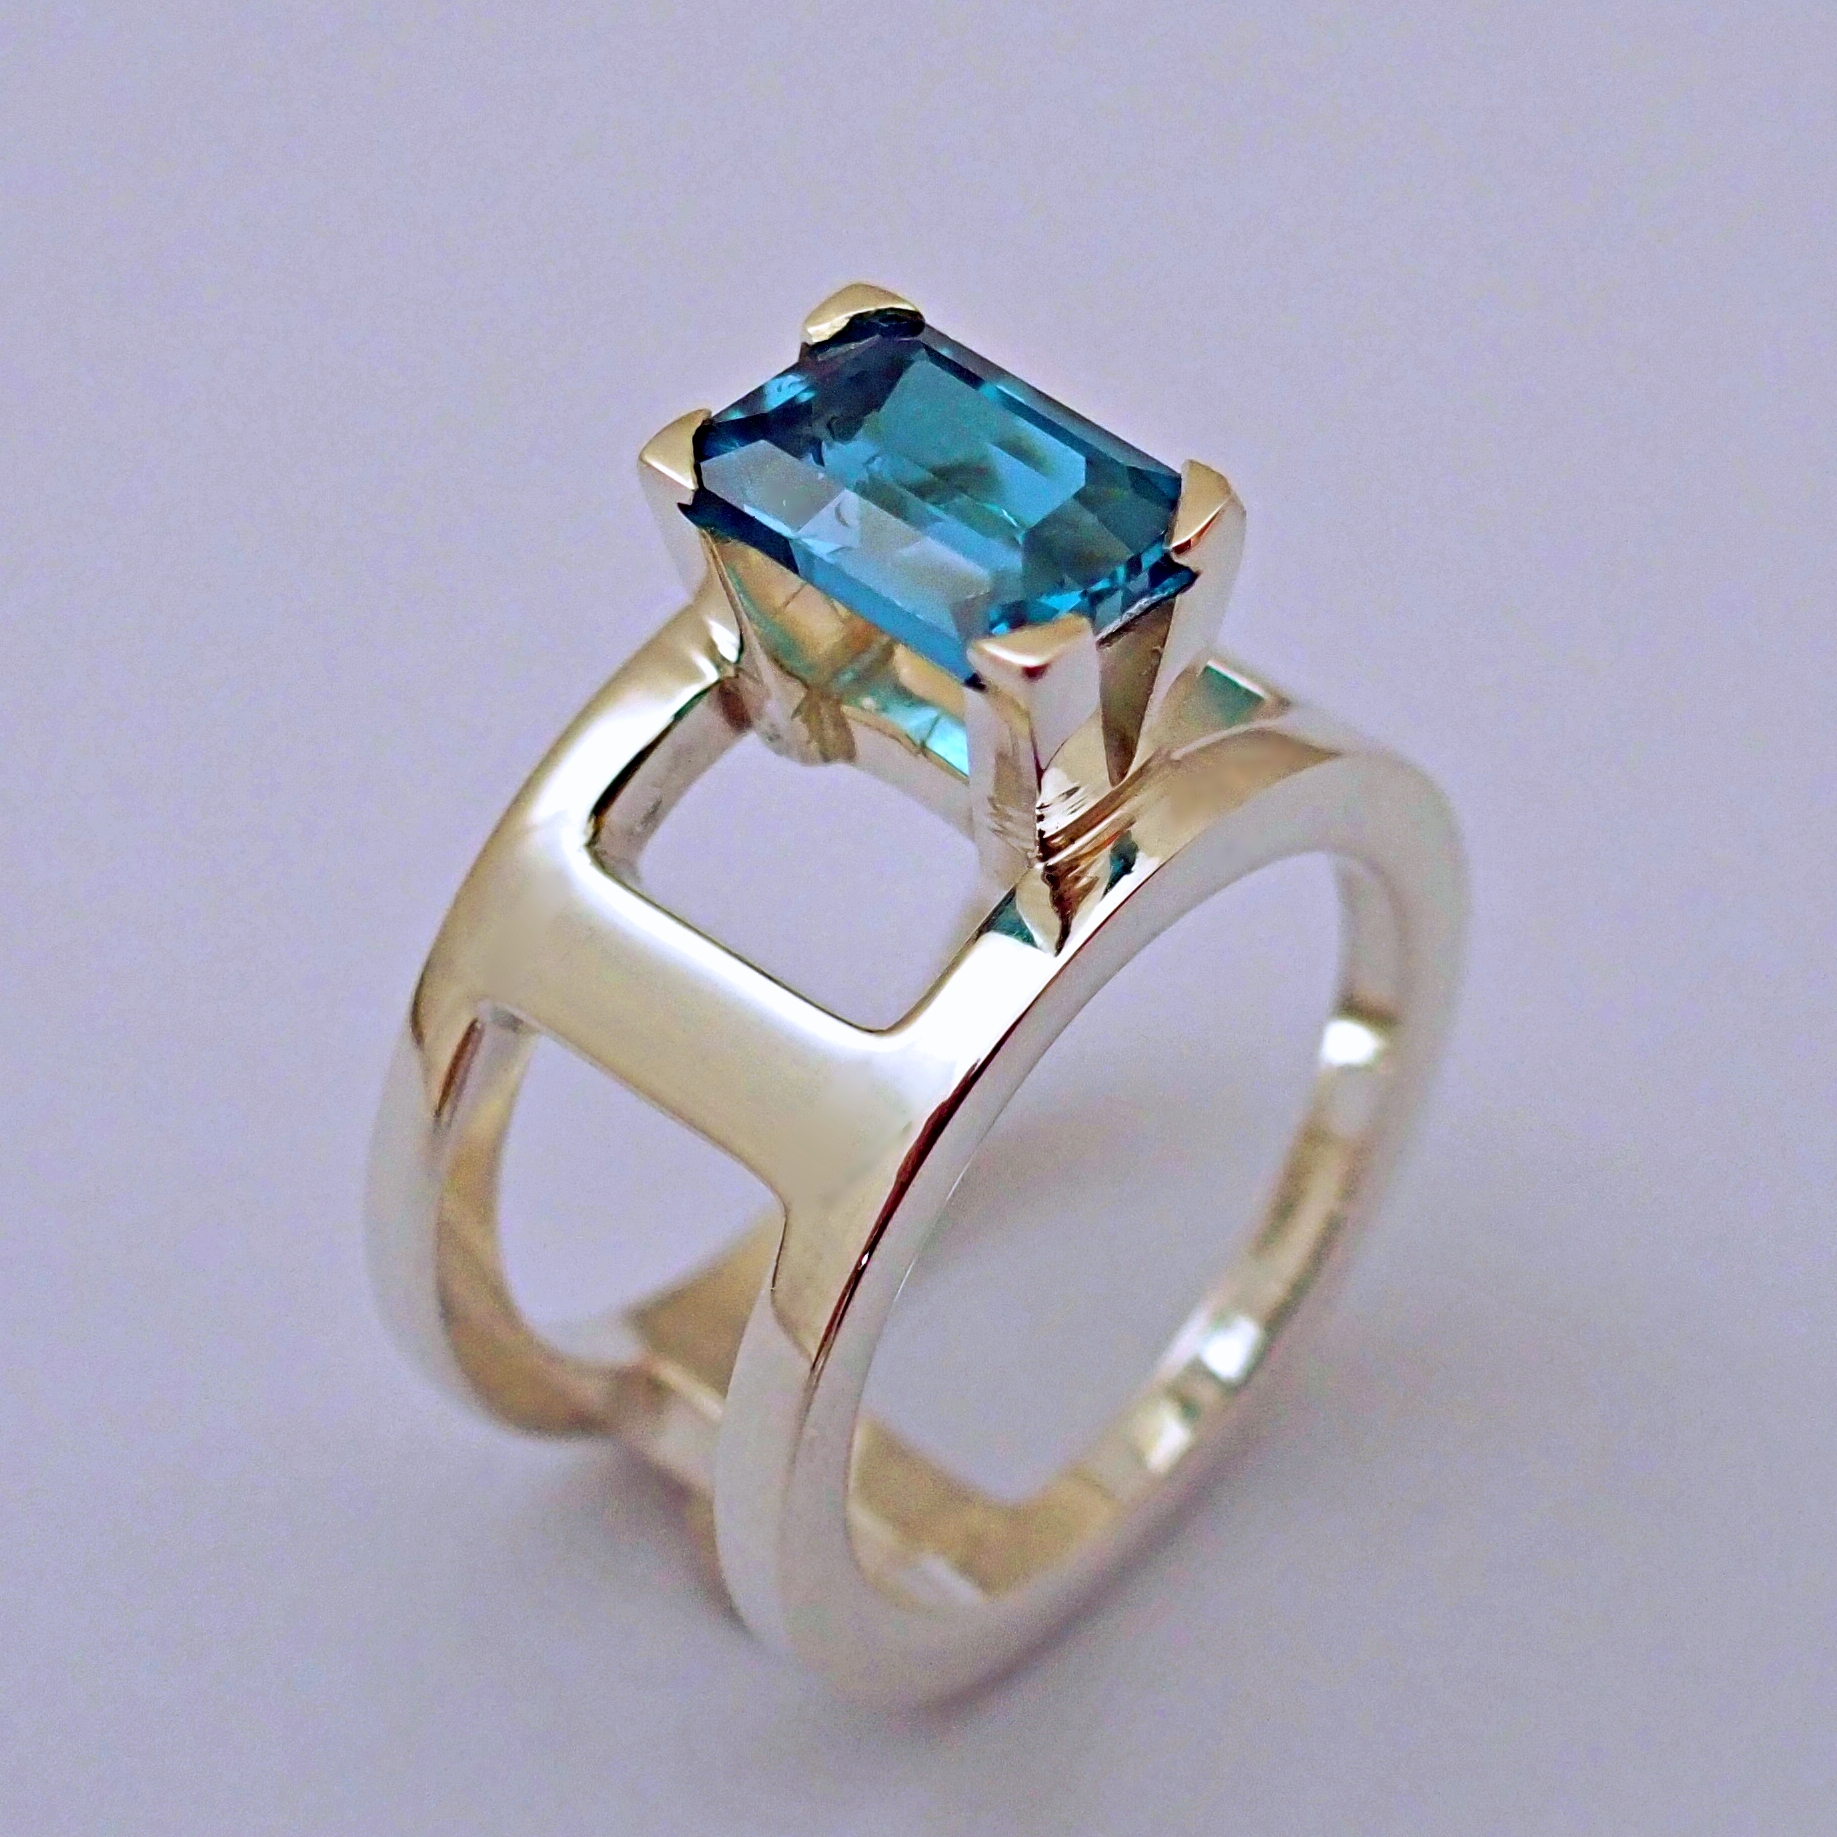 Nancy Allewerelt Fontus Handmade jewelry jewellery Emerald Cut London Topaz